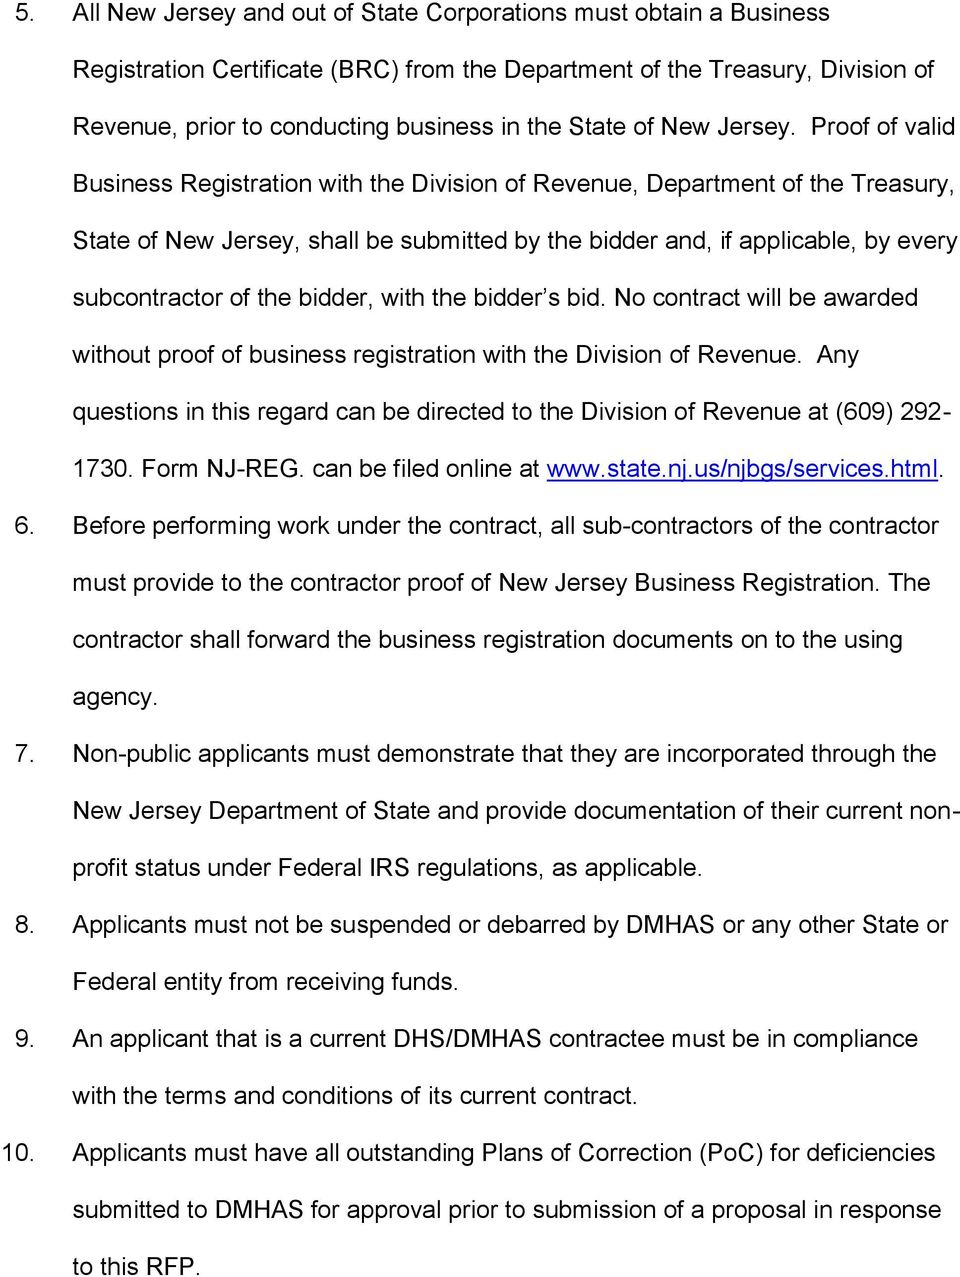 Proof of valid Business Registration with the Division of Revenue, Department of the Treasury, State of New Jersey, shall be submitted by the bidder and, if applicable, by every subcontractor of the